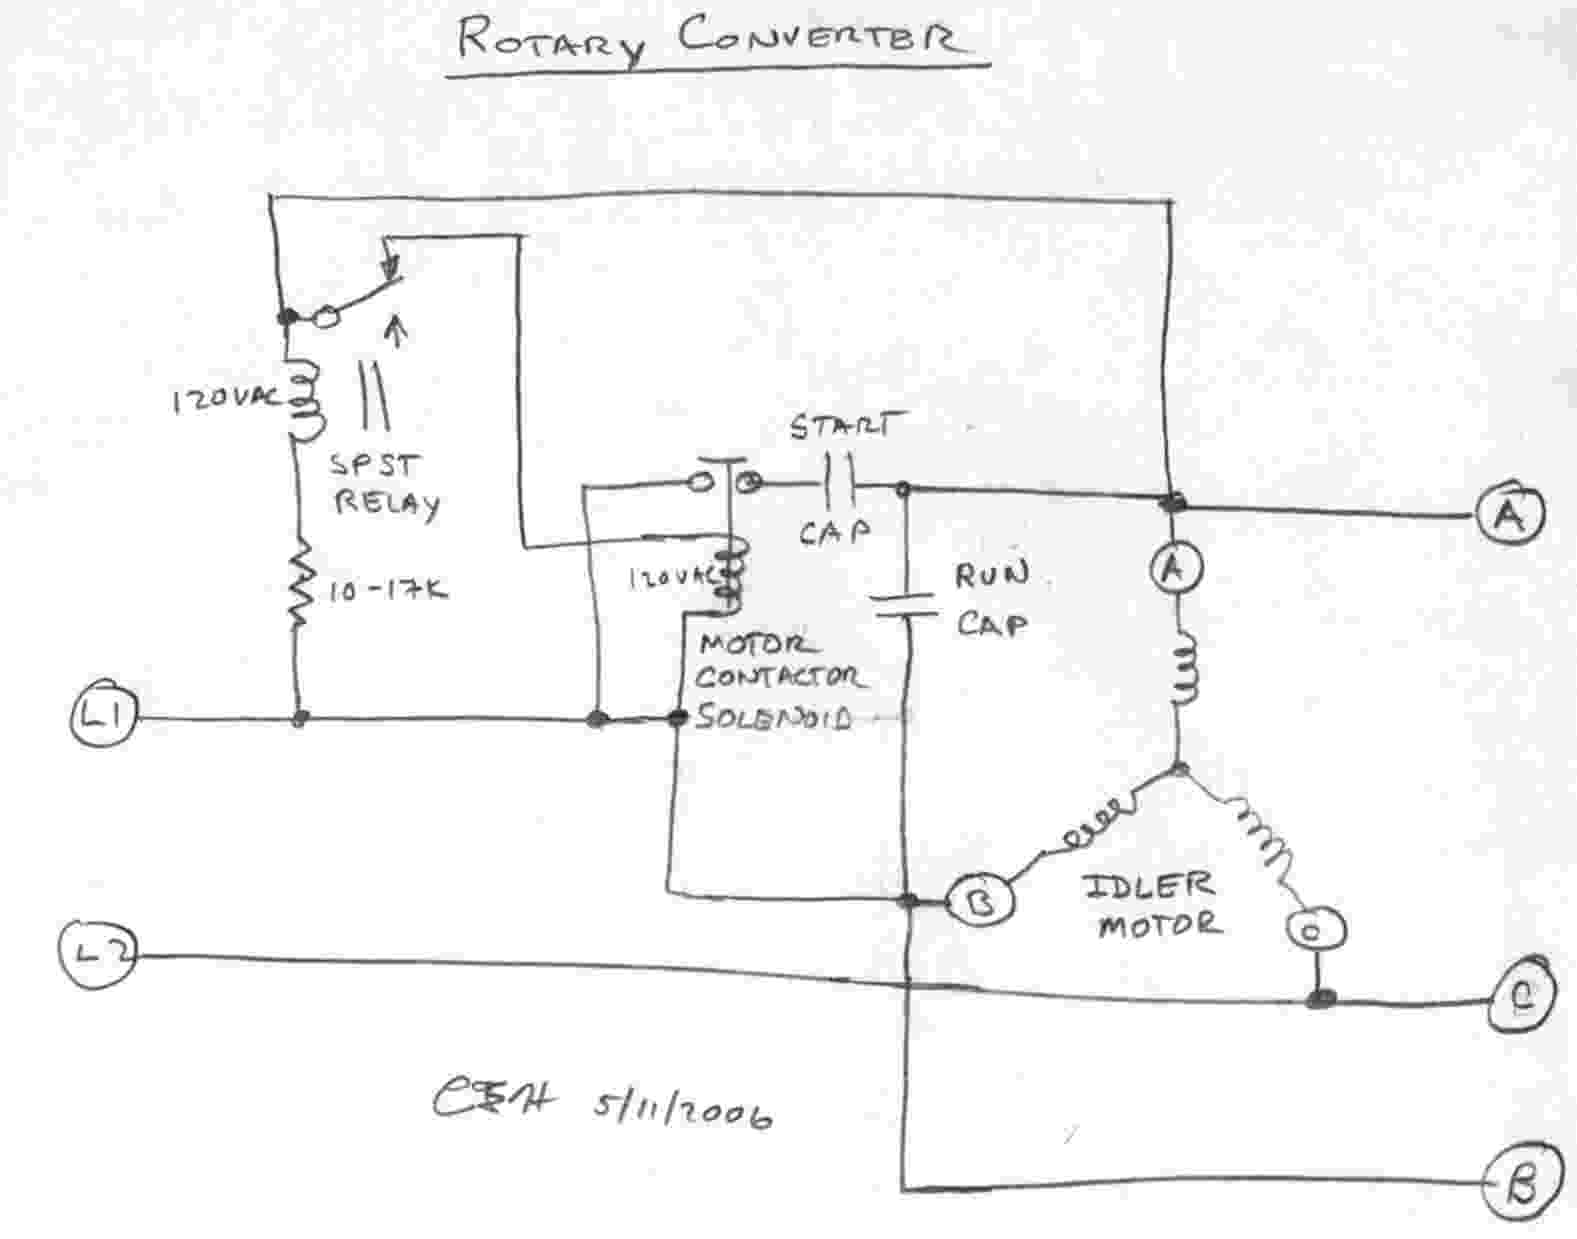 rotaryconv 3 phase converters single phase to 3 phase converter wiring diagram at soozxer.org